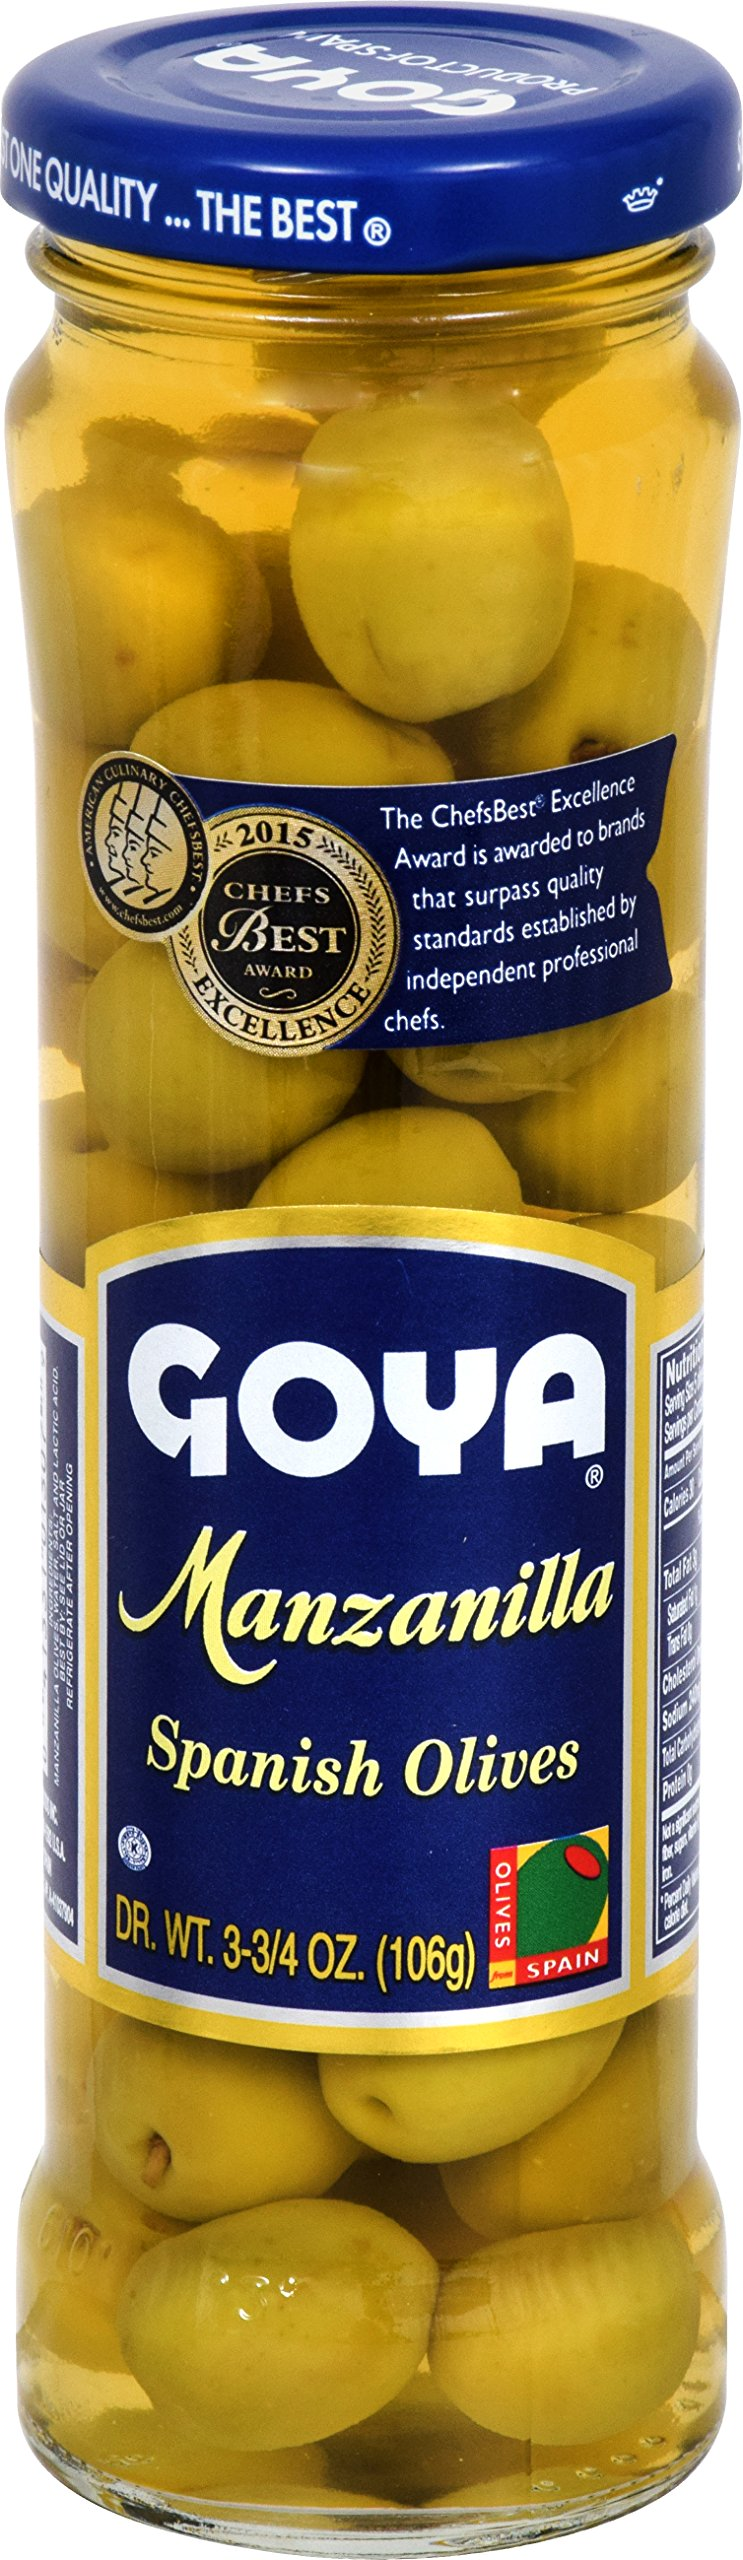 Goya Foods Manzanilla Olives, 3.75 Ounce (Pack of 24) by Goya